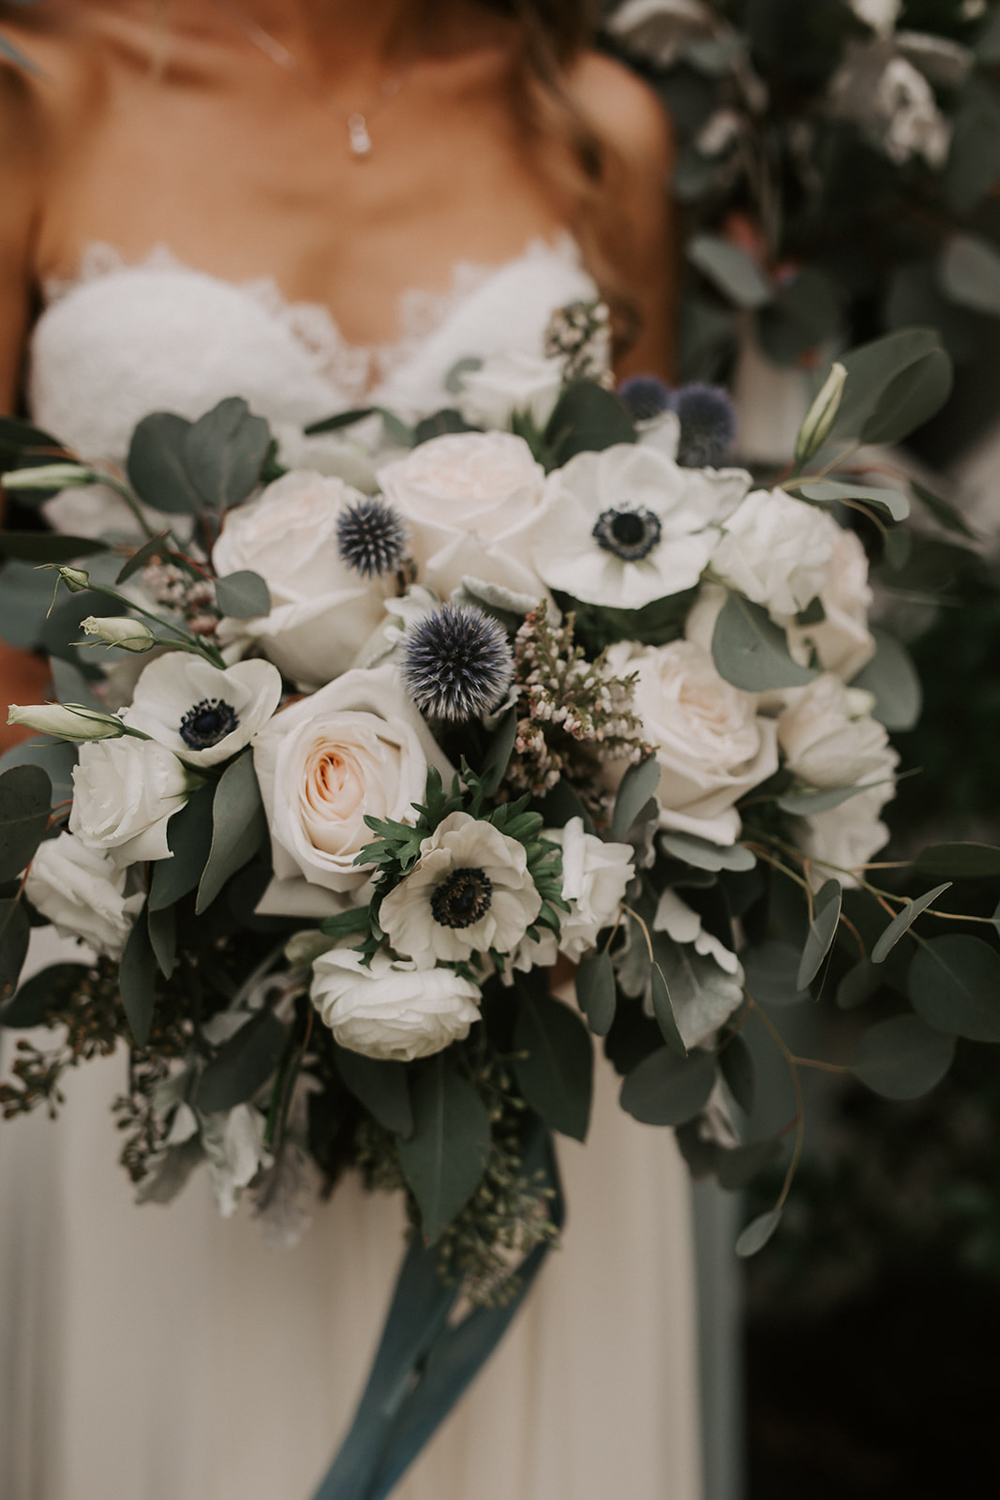 bride bouquet with white anemones and blue thistles